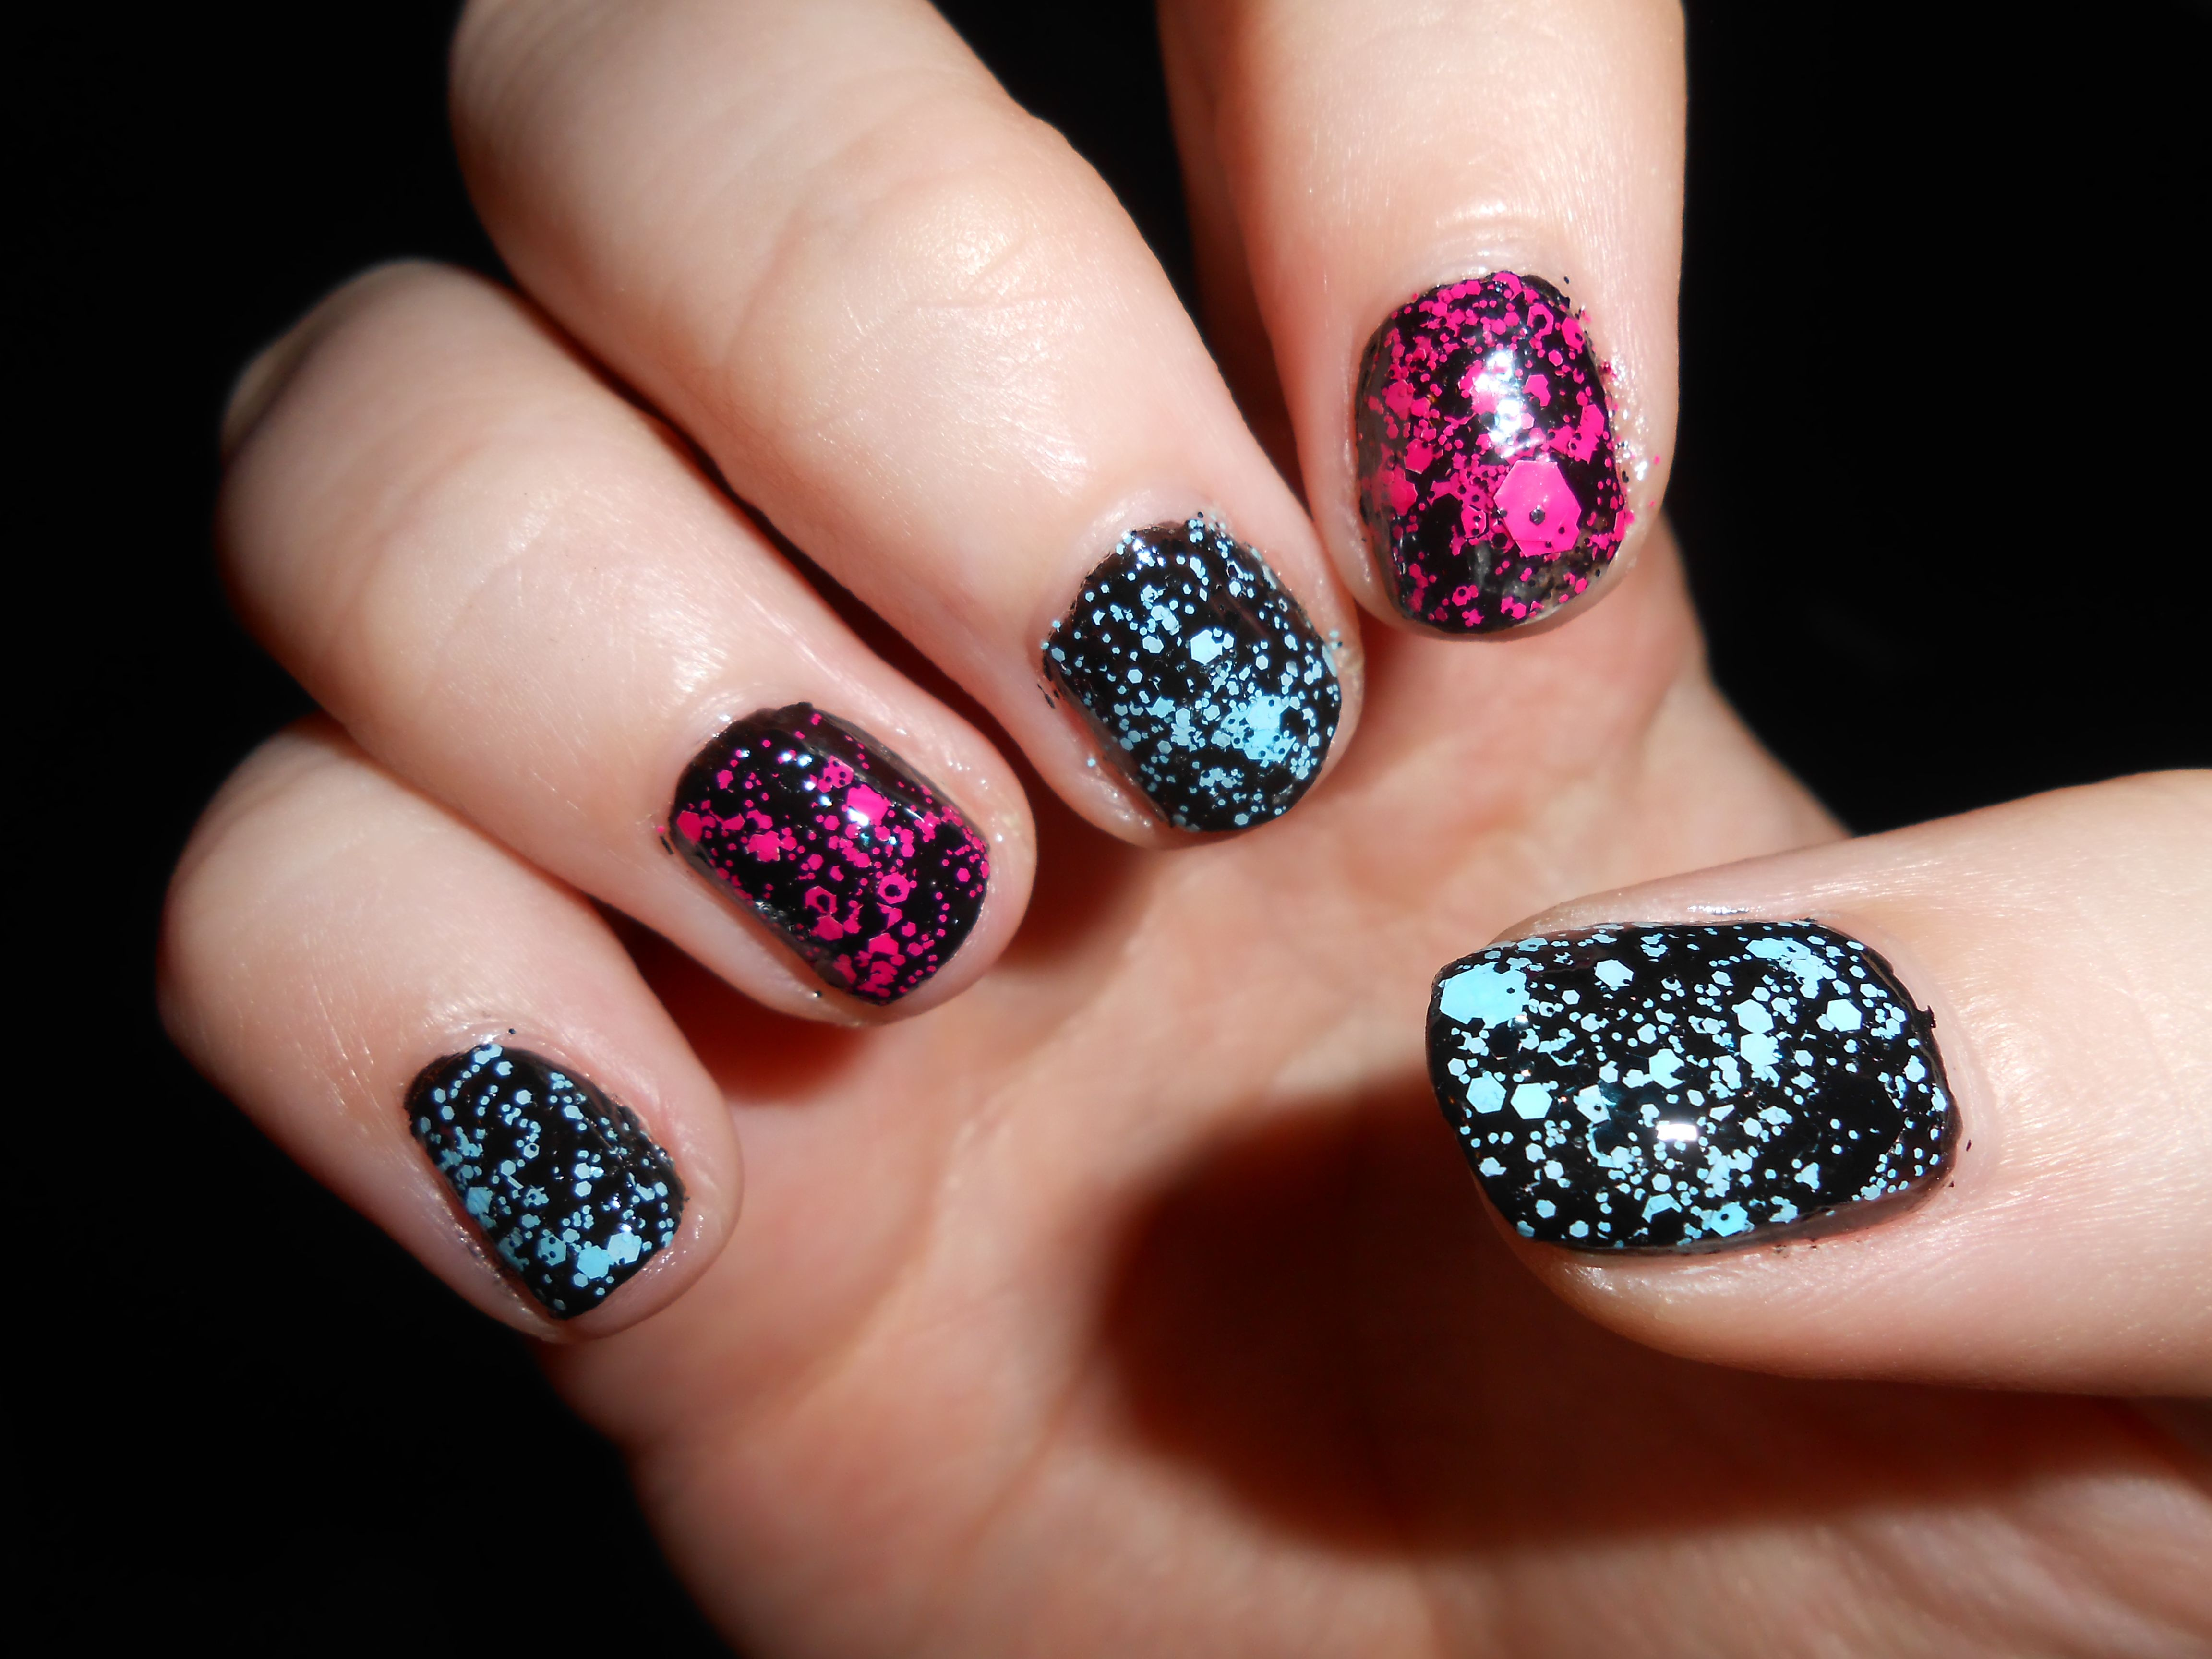 Paint splatter nails. Take a black nail polish and add either pink and black or or blue and black splatter nail polish. I got my nail polish at this page: http://www.torrid.com/product/splatter-skull-nail-polish/10446126.html